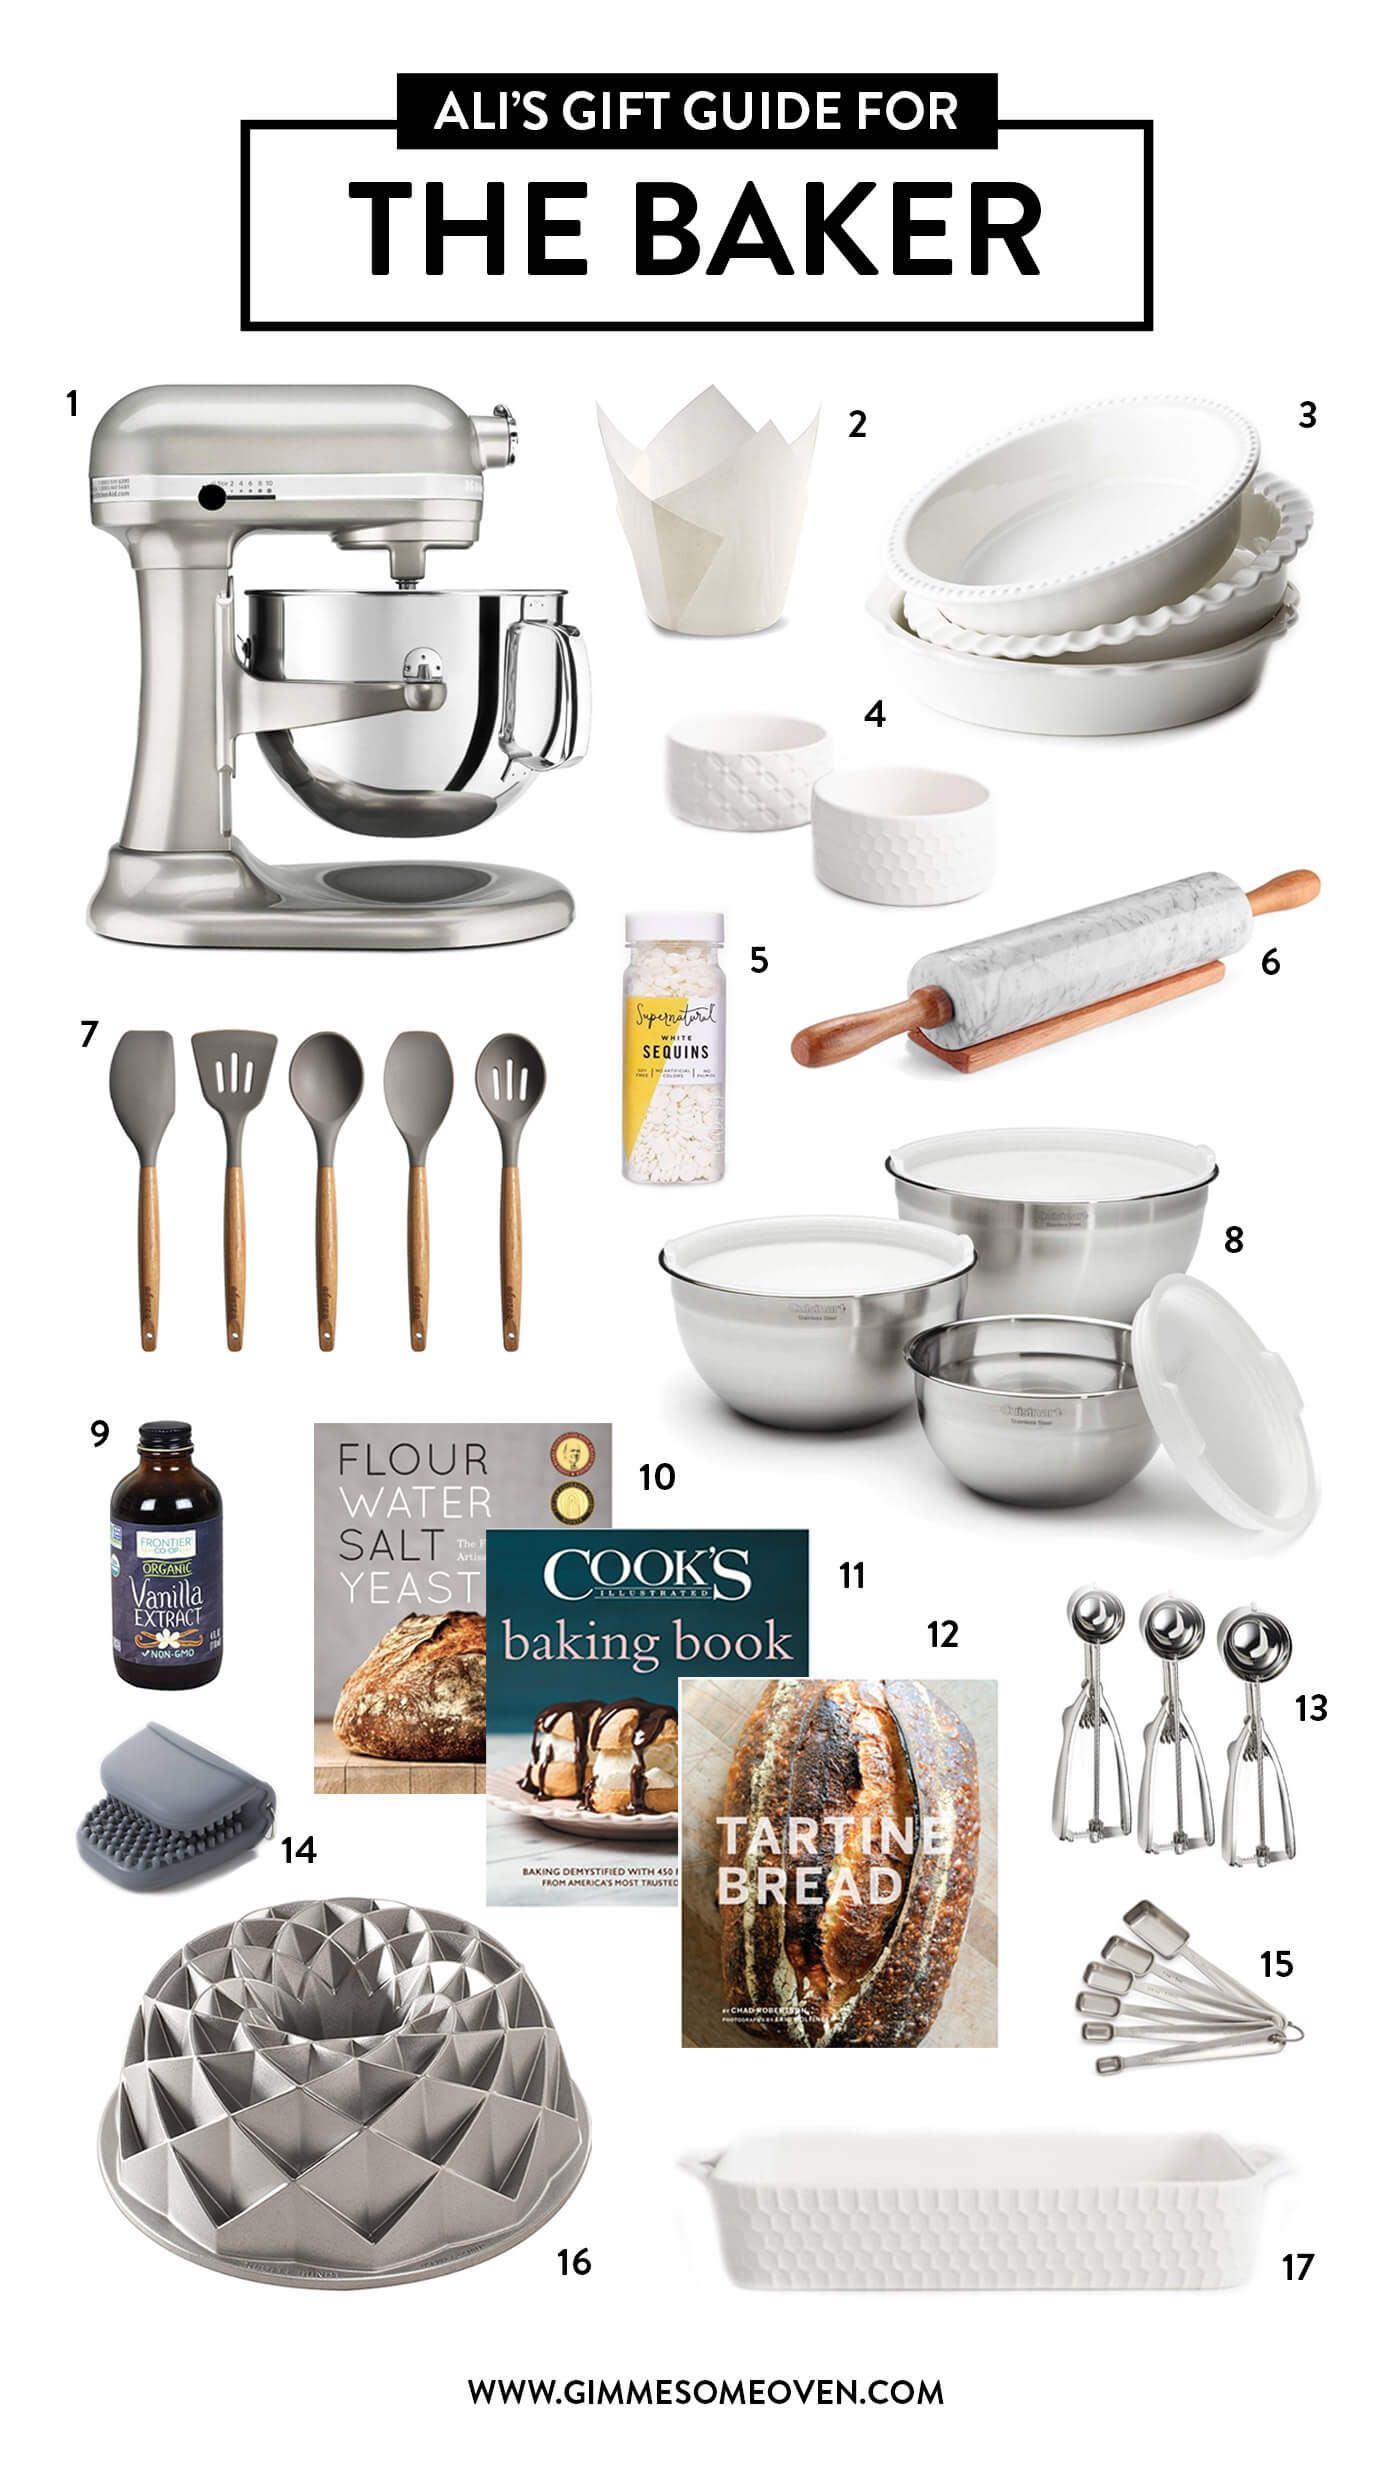 Holiday Gift Guide For THE BAKER | Lots of fun gift ideas for friends who love baking, cooking, entertaining, hosting, meal prep, gathering people in the kitchen and around the table. | gimmesomeoven.com #gift #guide #home #decor #tabletop #baking #kitchen